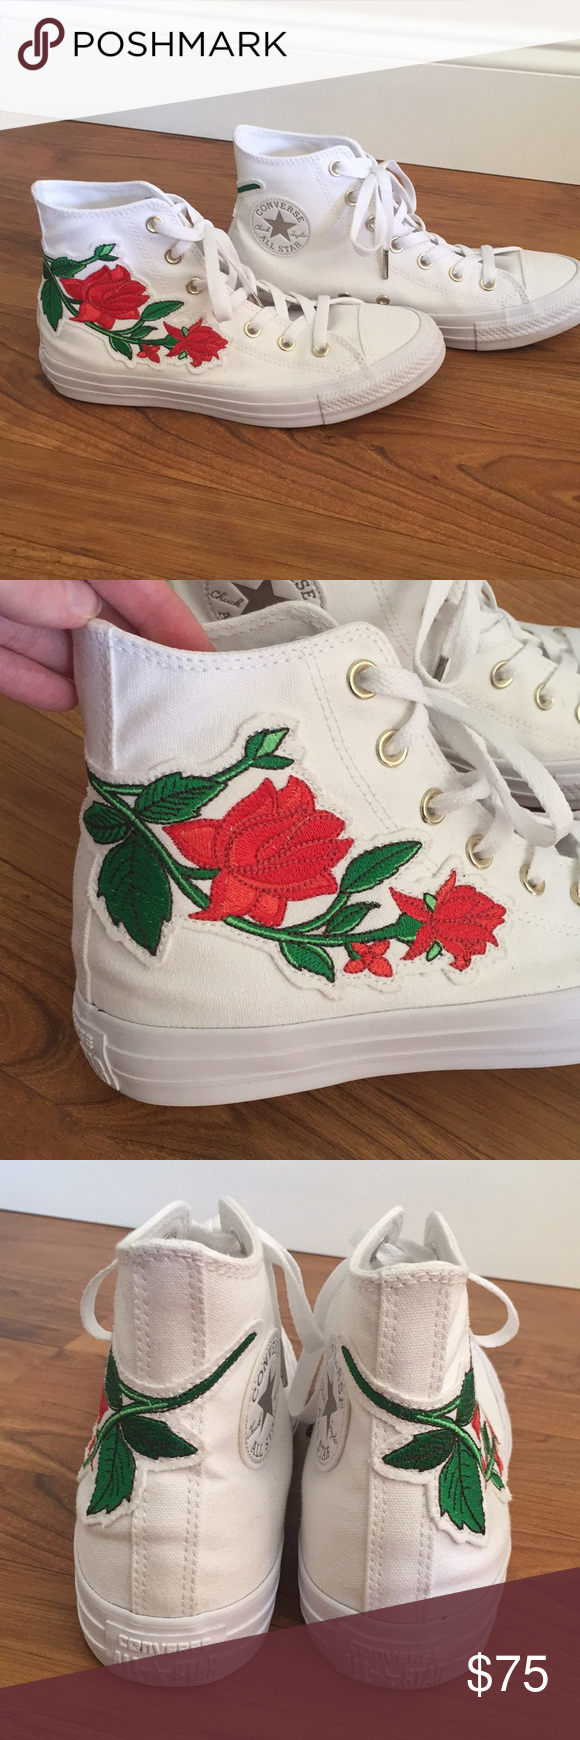 8bb9d77717fd Spotted while shopping on Poshmark  New Converse Embroidered Rose Hi Top  Sneaker!  poshmark  fashion  shopping  style  Converse  Shoes